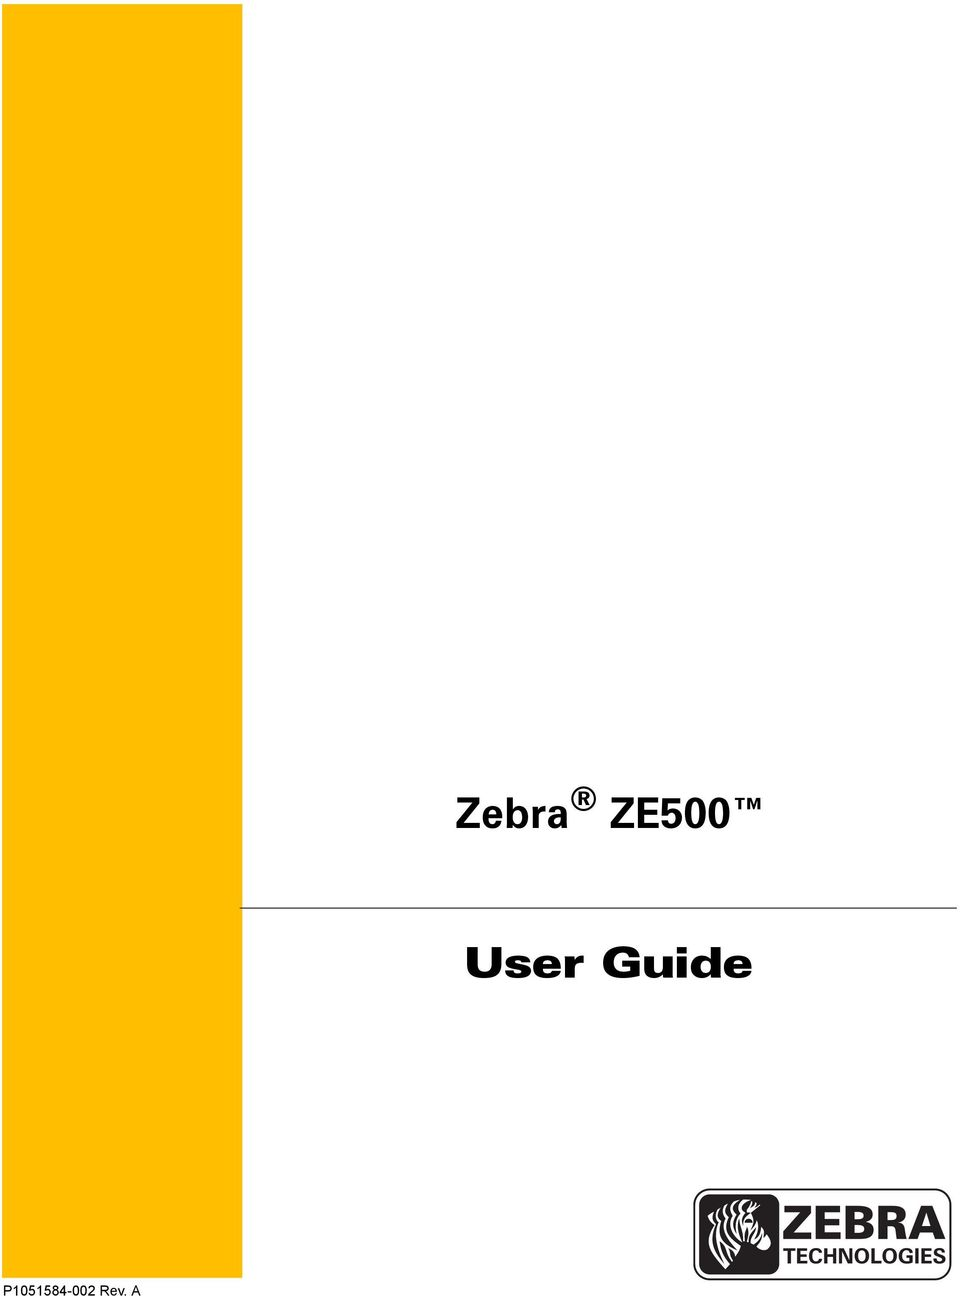 Zebra ZE500  User Guide  P Rev  A - PDF